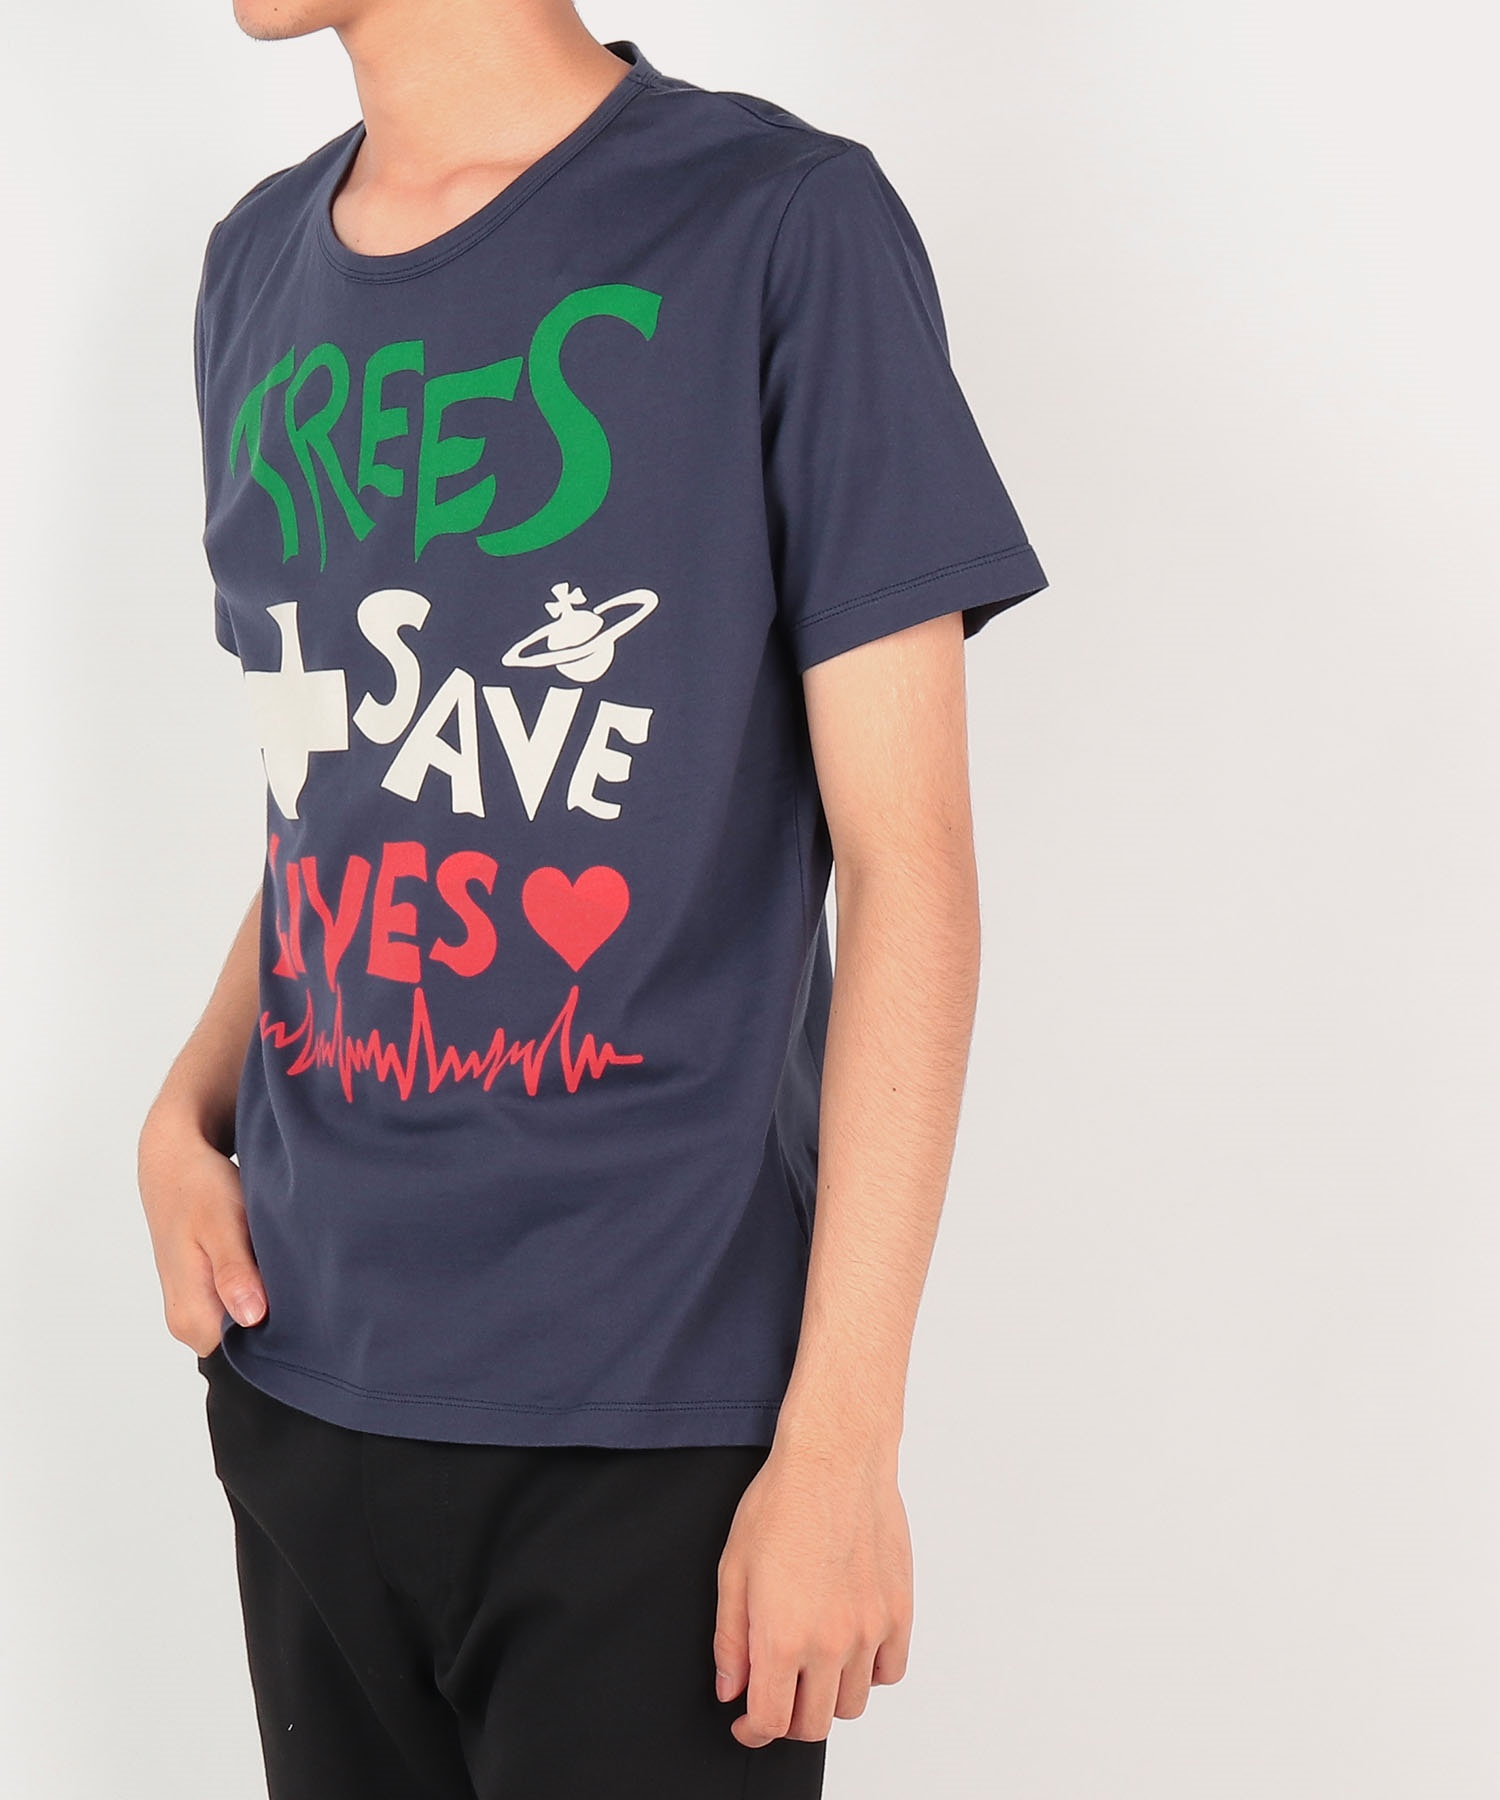 TREES SAVE LIVES 半袖Tシャツ